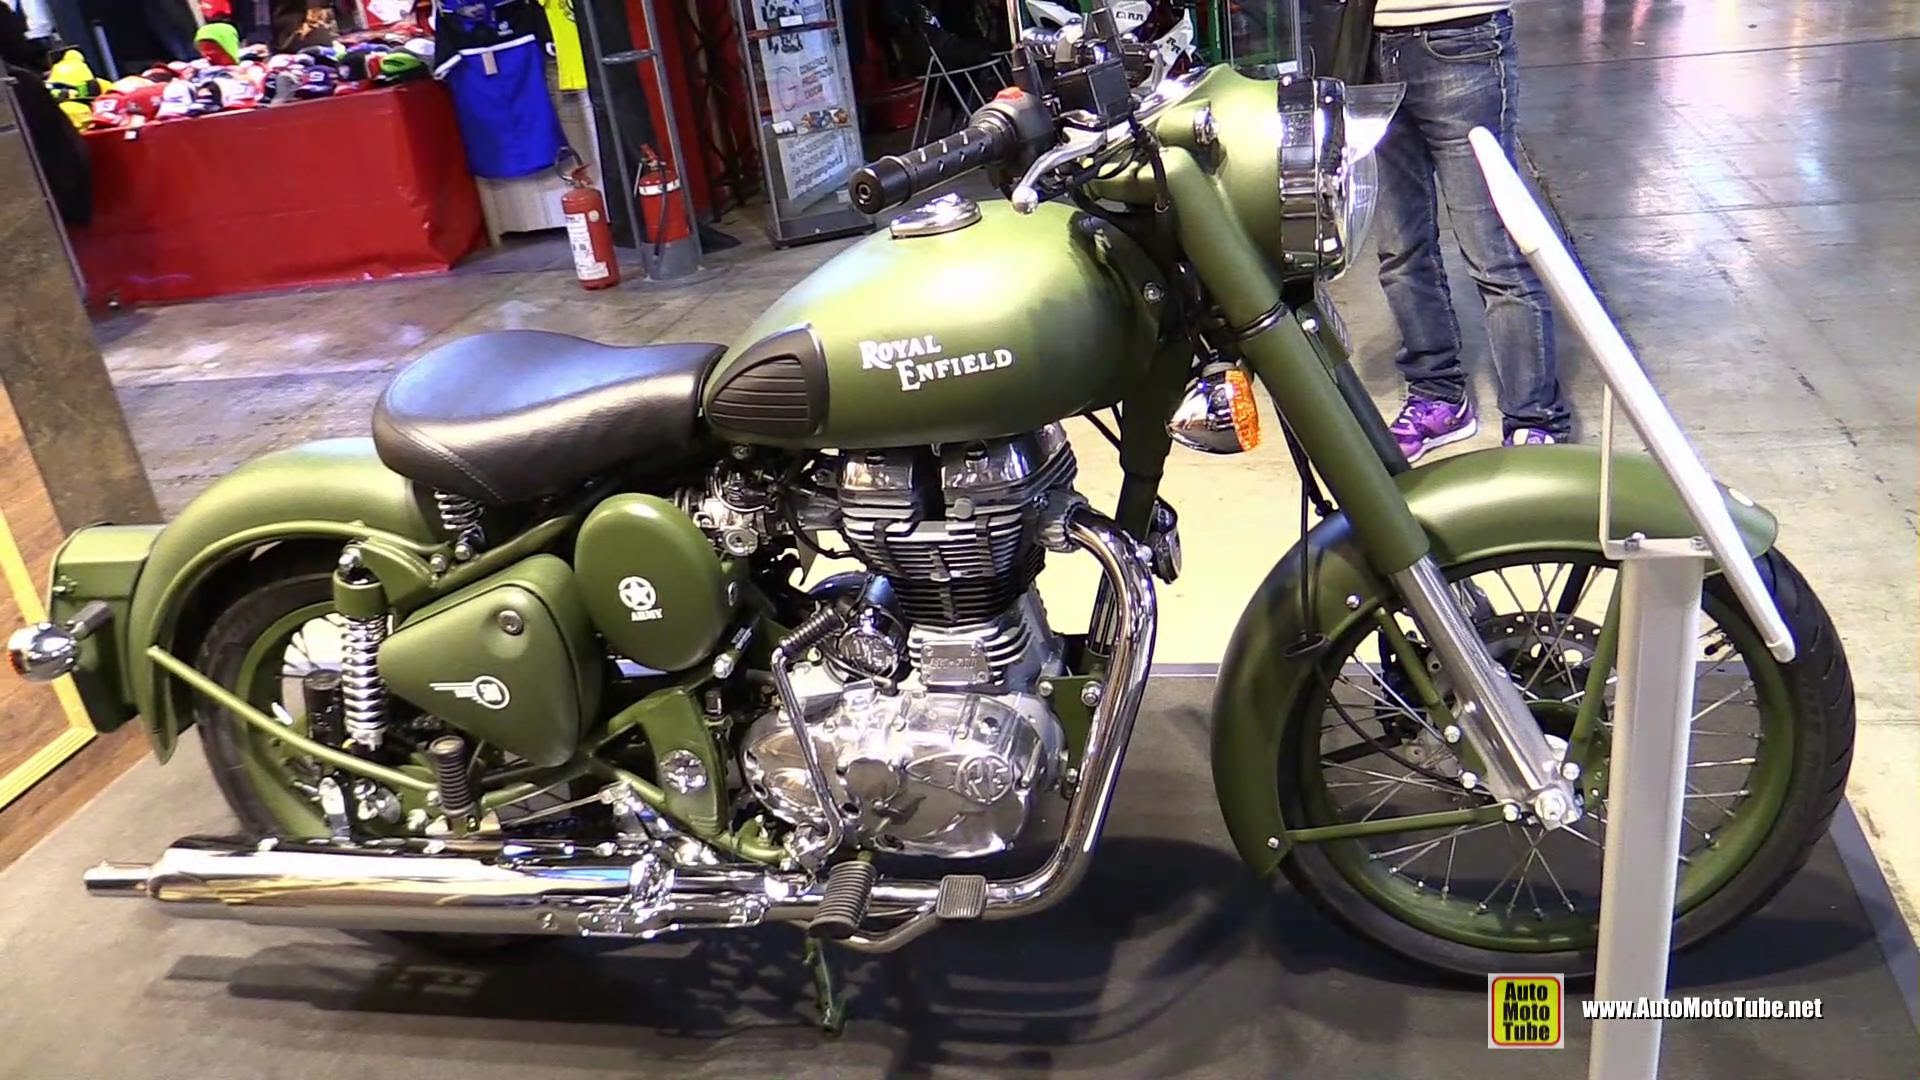 Royal Enfield Bullet 500 Army images #122703